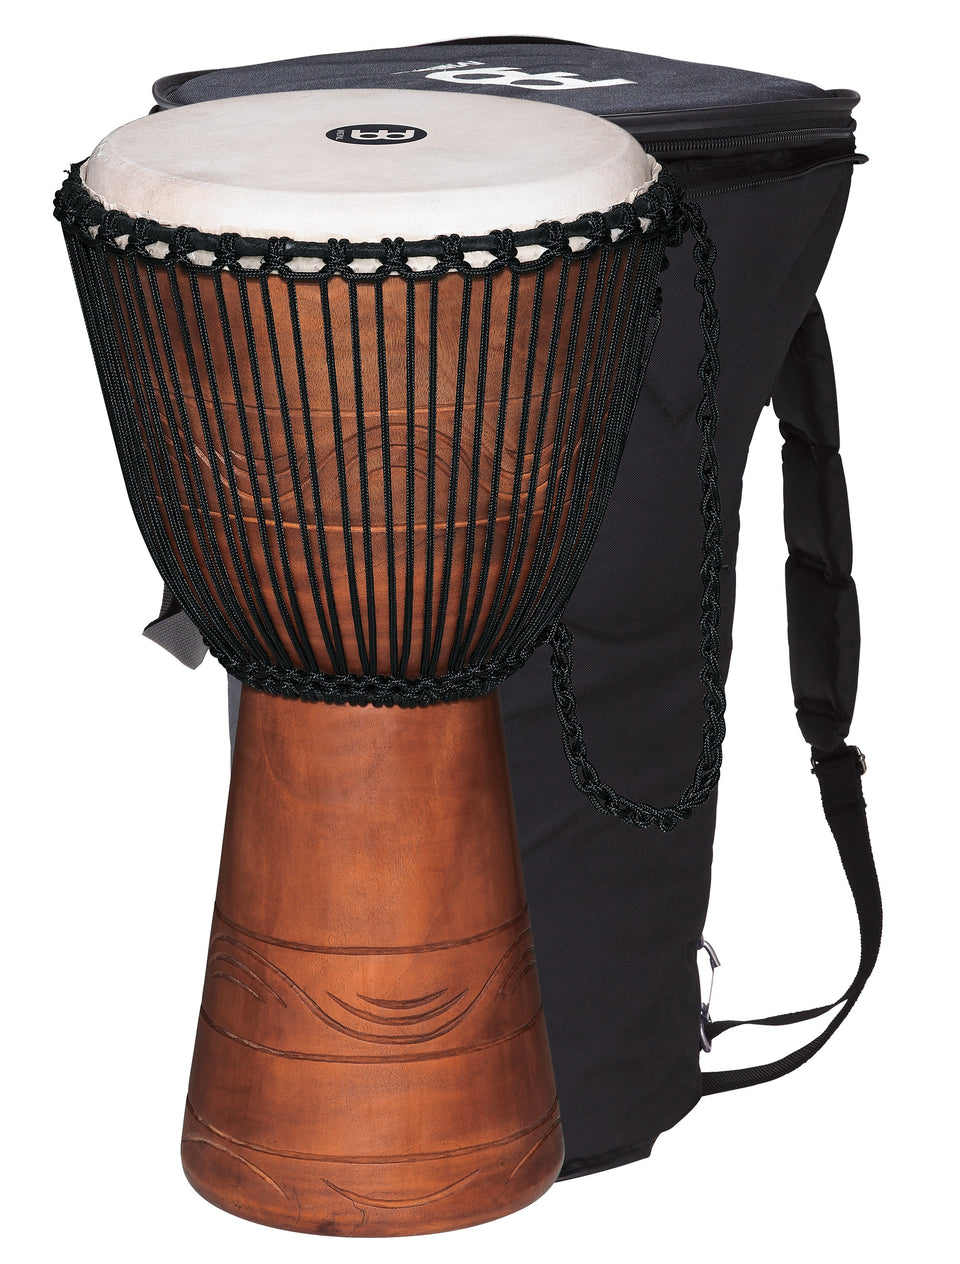 "Meinl ADJ2-XL BAG Original African Style Rope Tuned Wood Djembe 13"" + Bag"